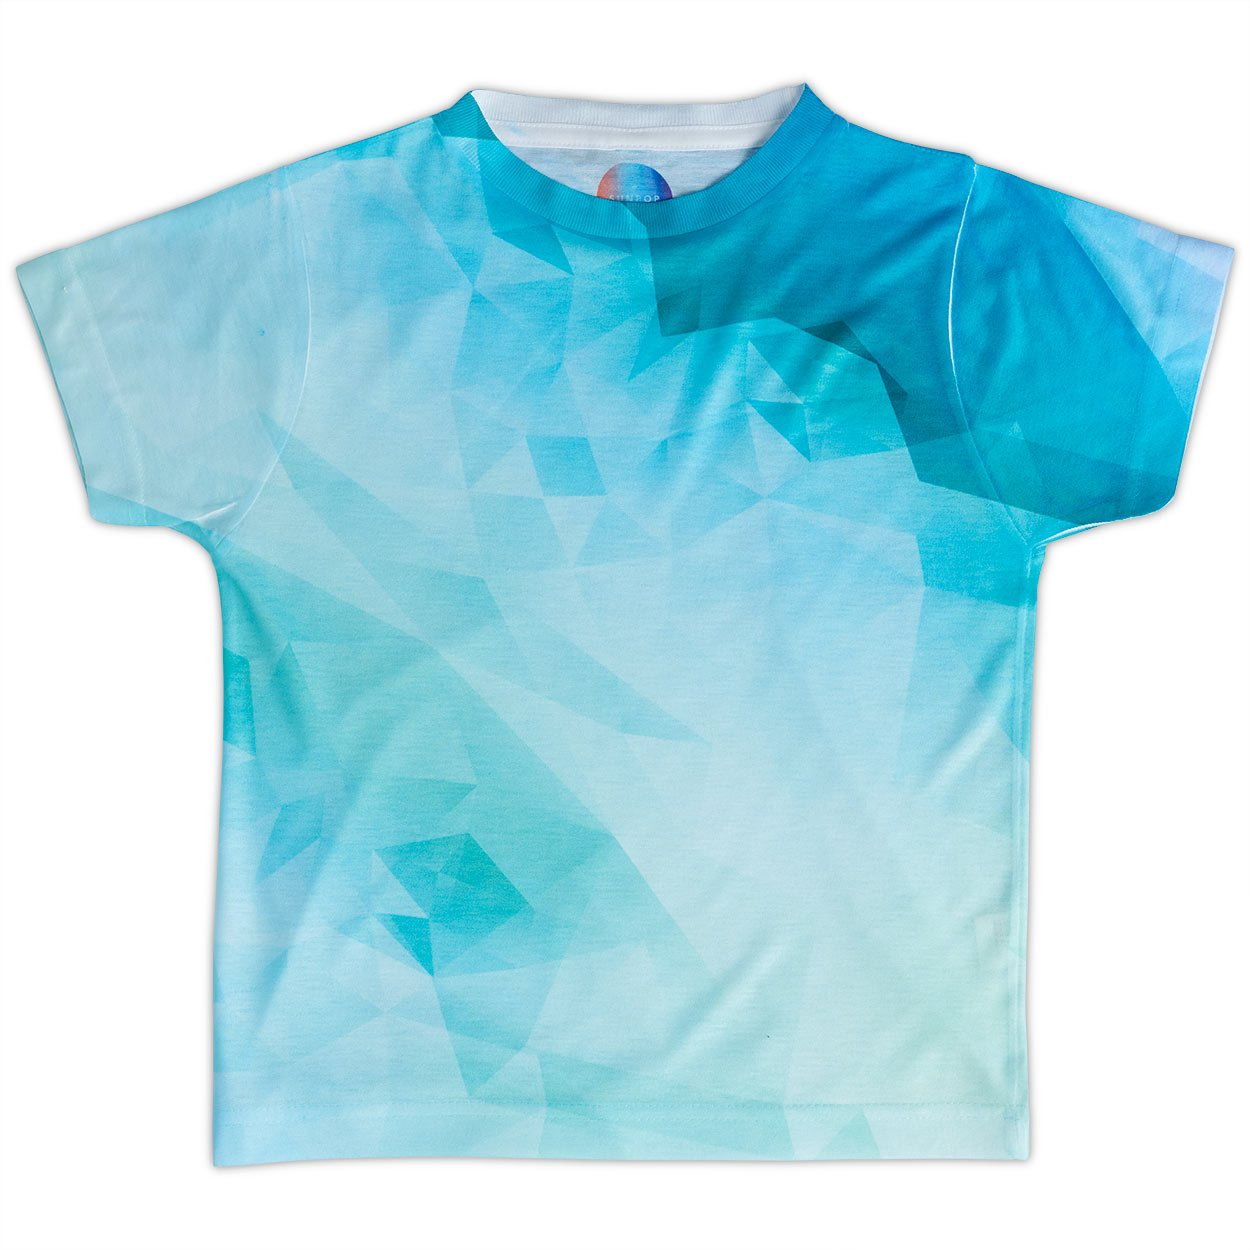 Kids Geometrical Graphic T-shirt